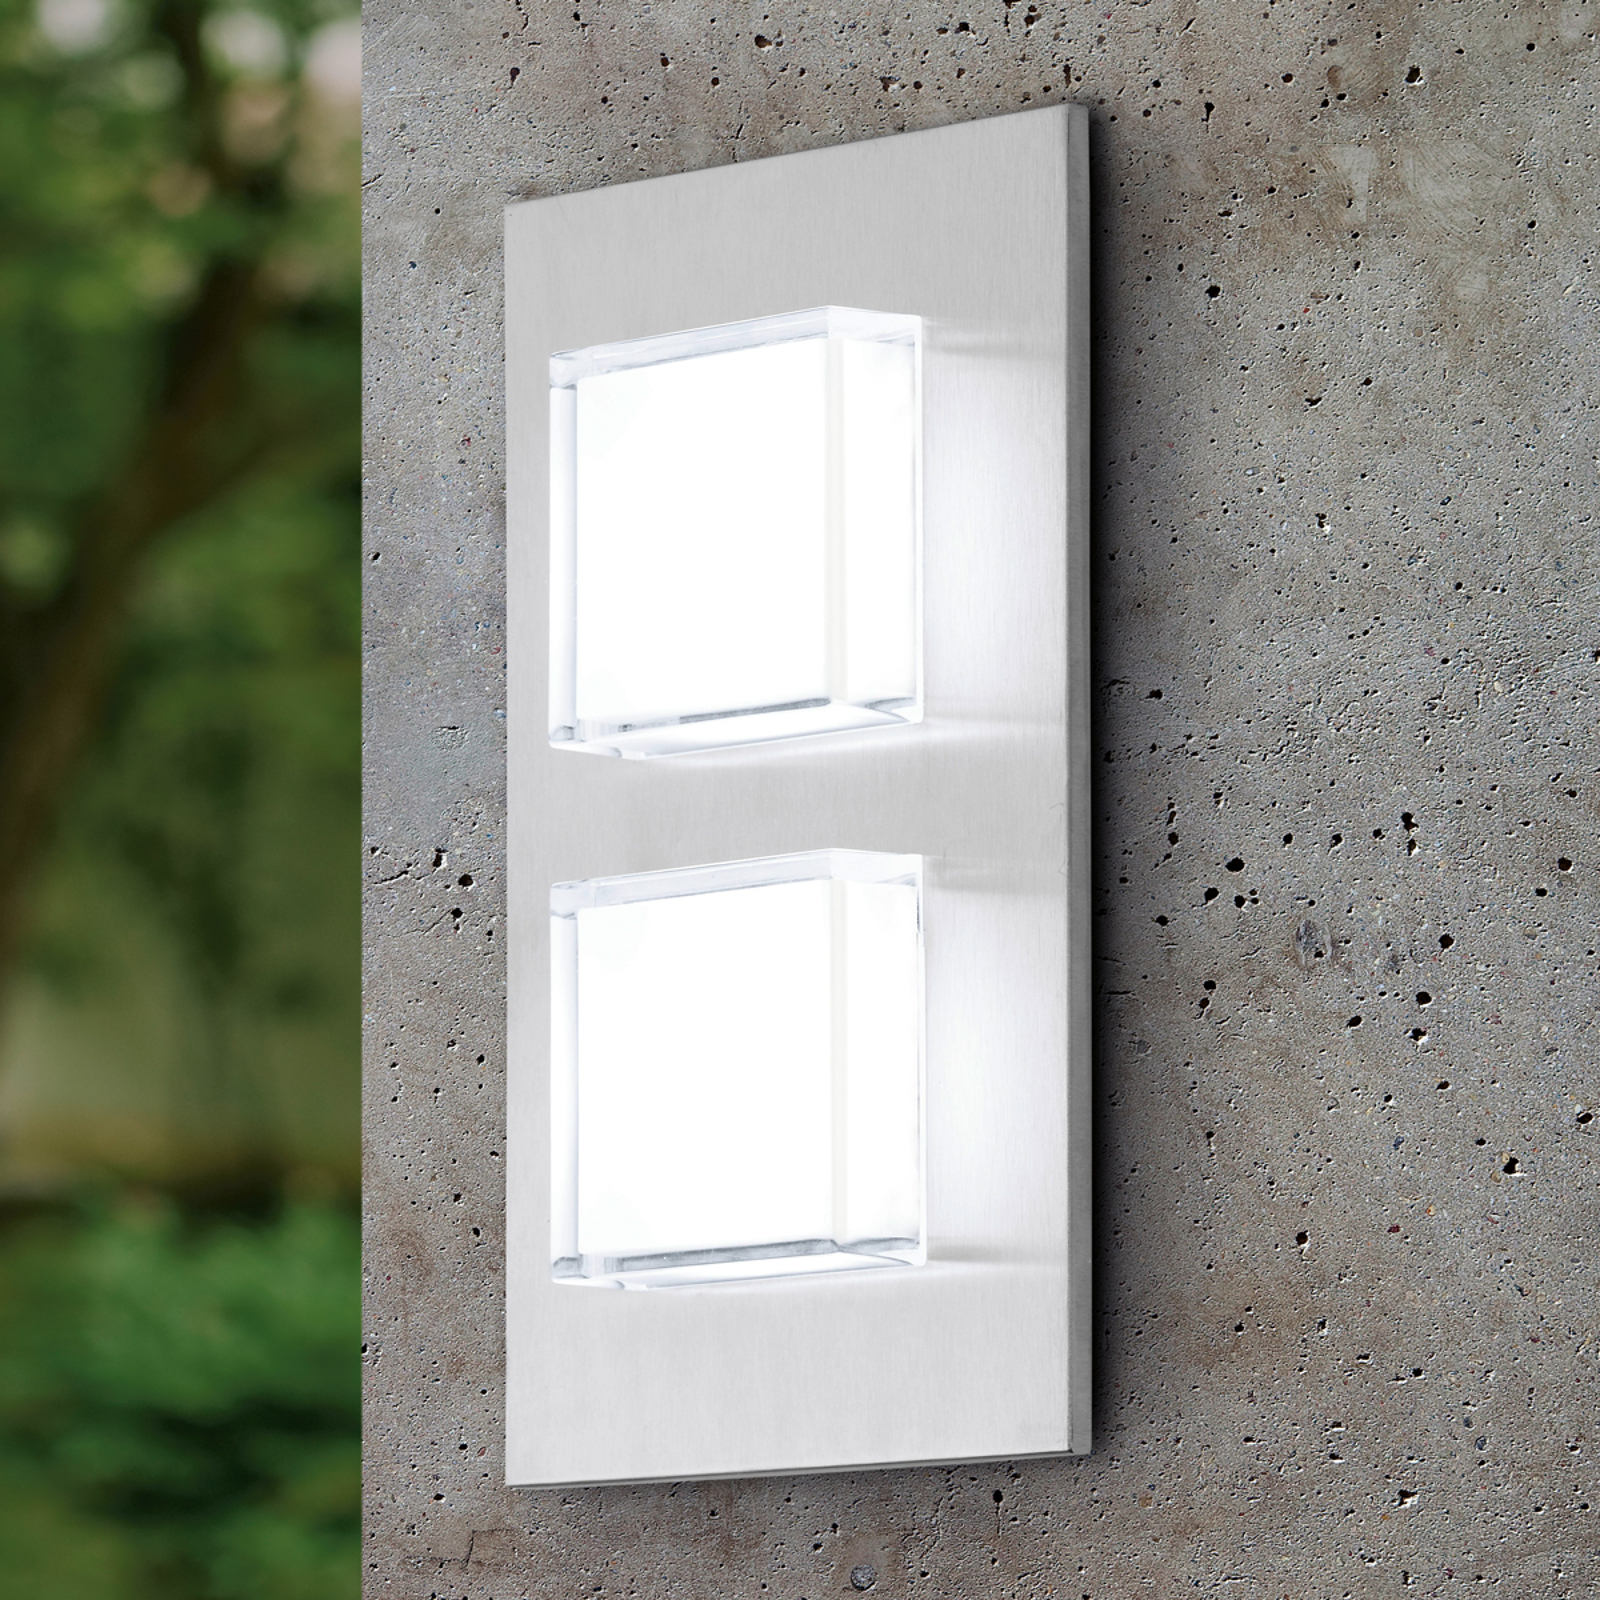 Aplique de pared exterior LED de dos brazos Pias